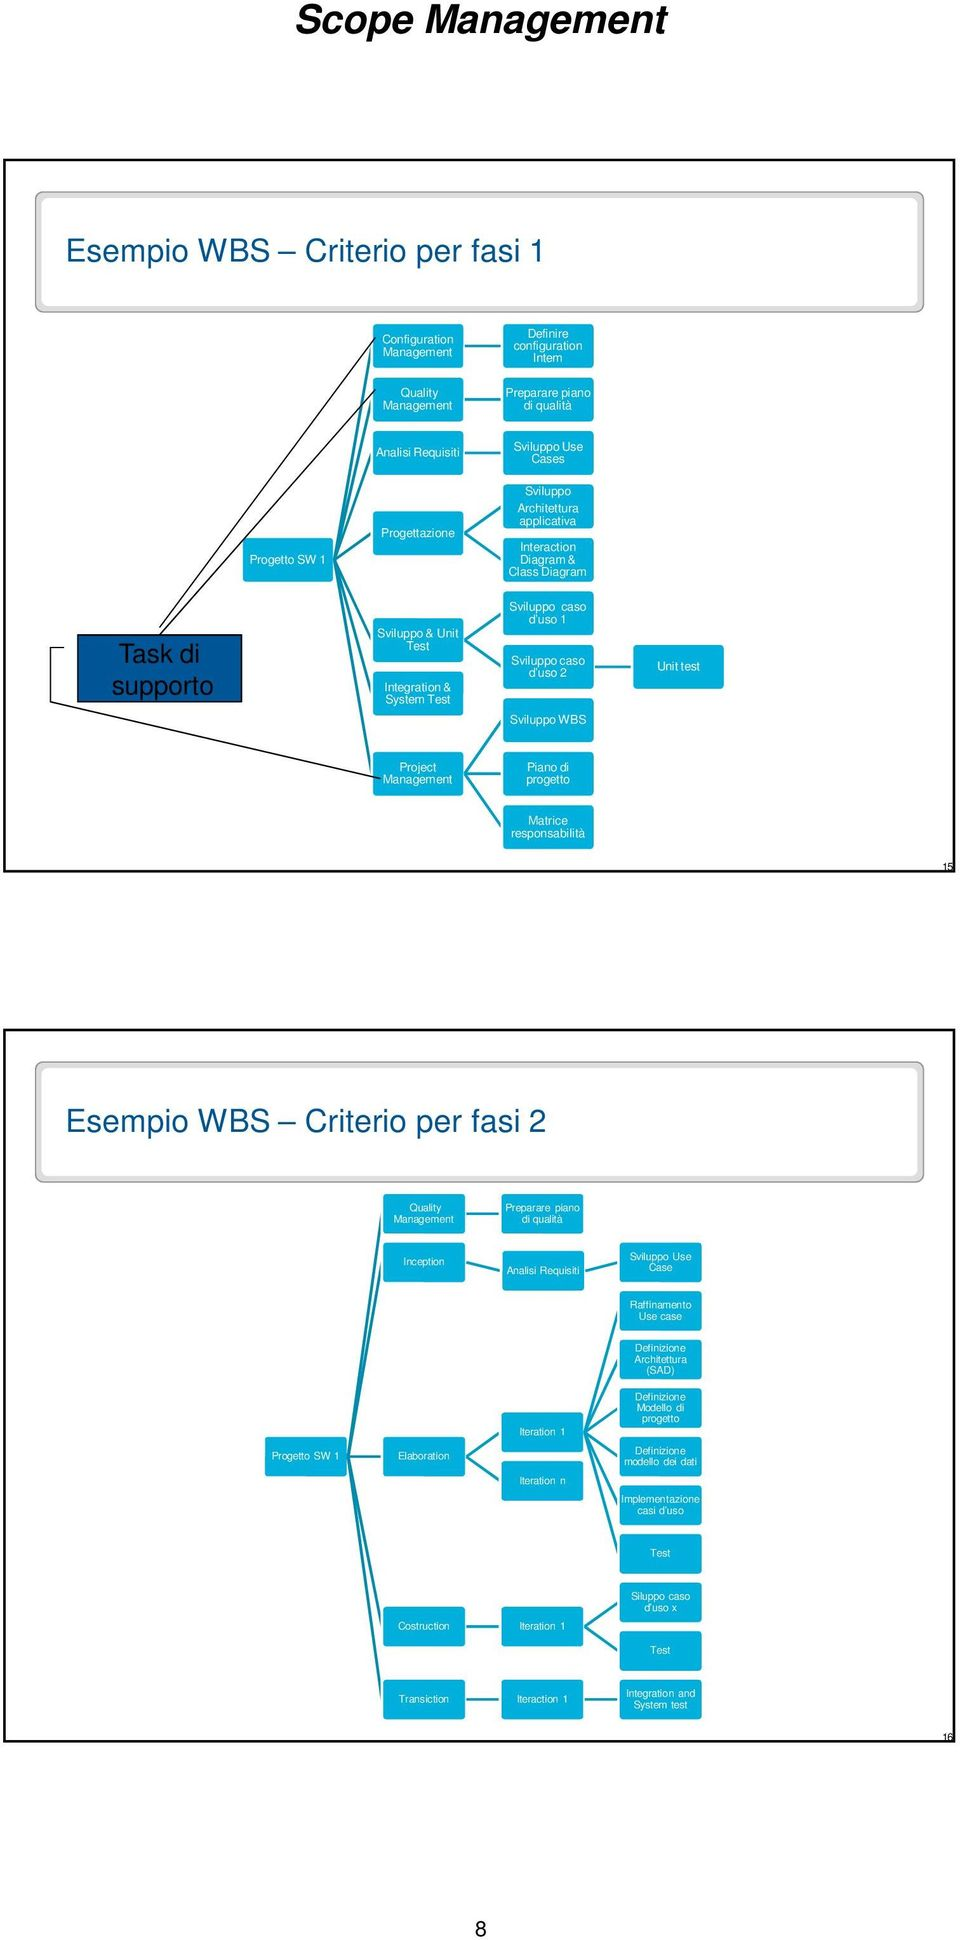 WBS Project Management Piano di progetto Matrice responsabilità 15 Esempio WBS Criterio per fasi 2 Quality Management Preparare piano di qualità Inception Analisi Requisiti Sviluppo Use Case